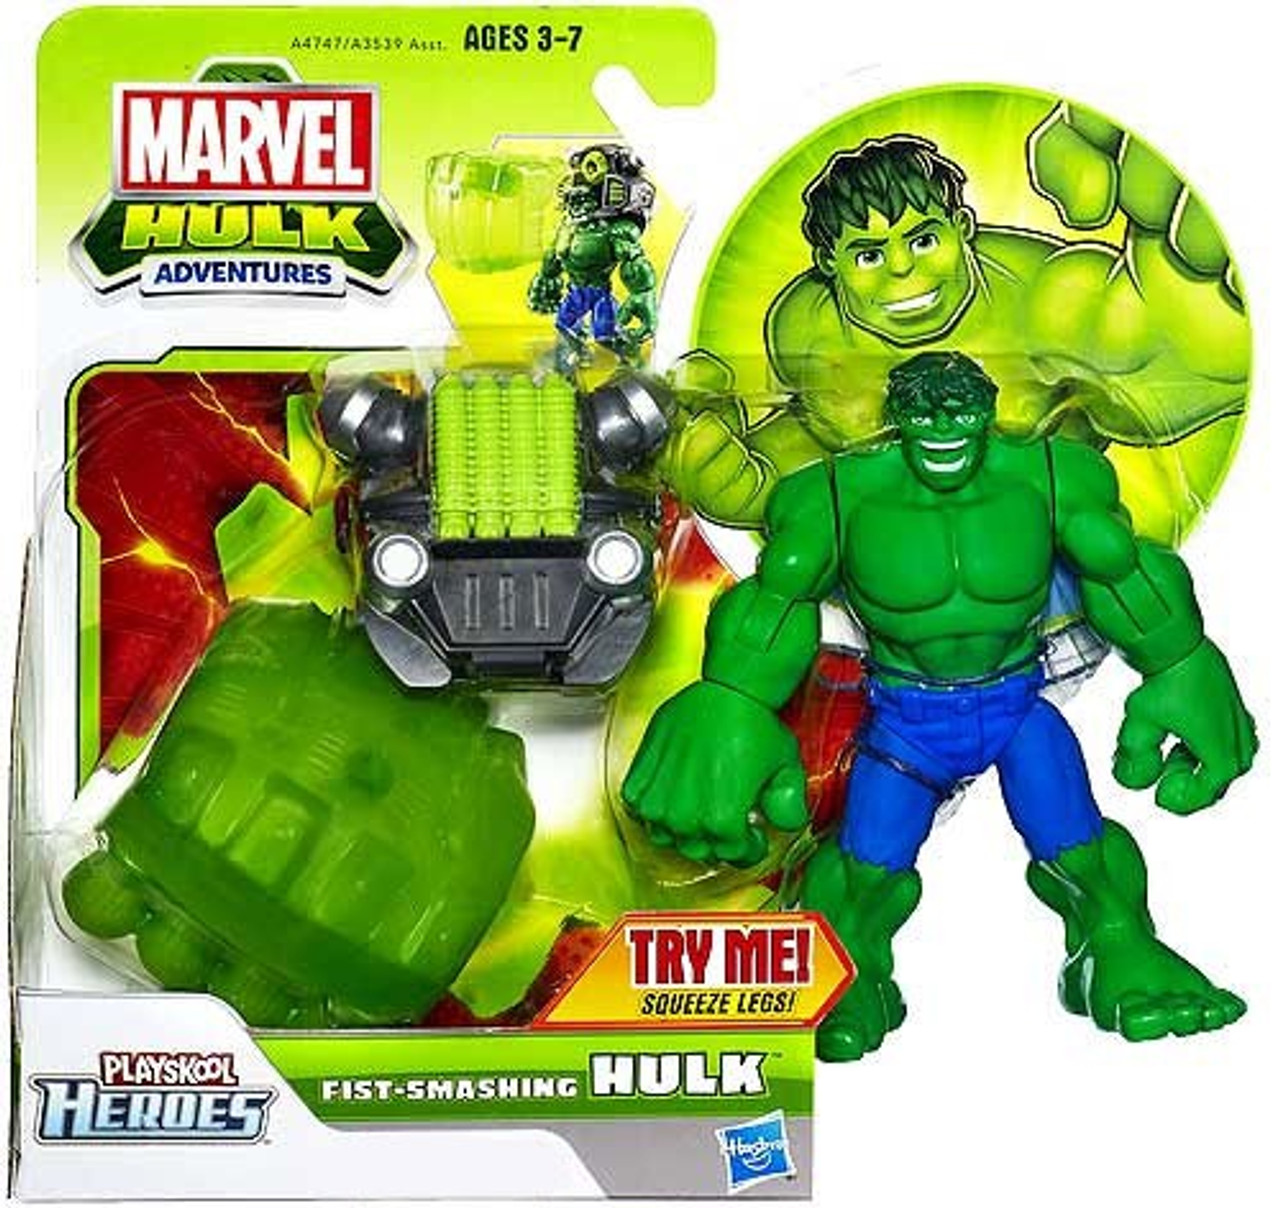 Marvel Playskool Heroes Hulk Adventures Fist-Smashing Hulk Exclusive Action Figure Set